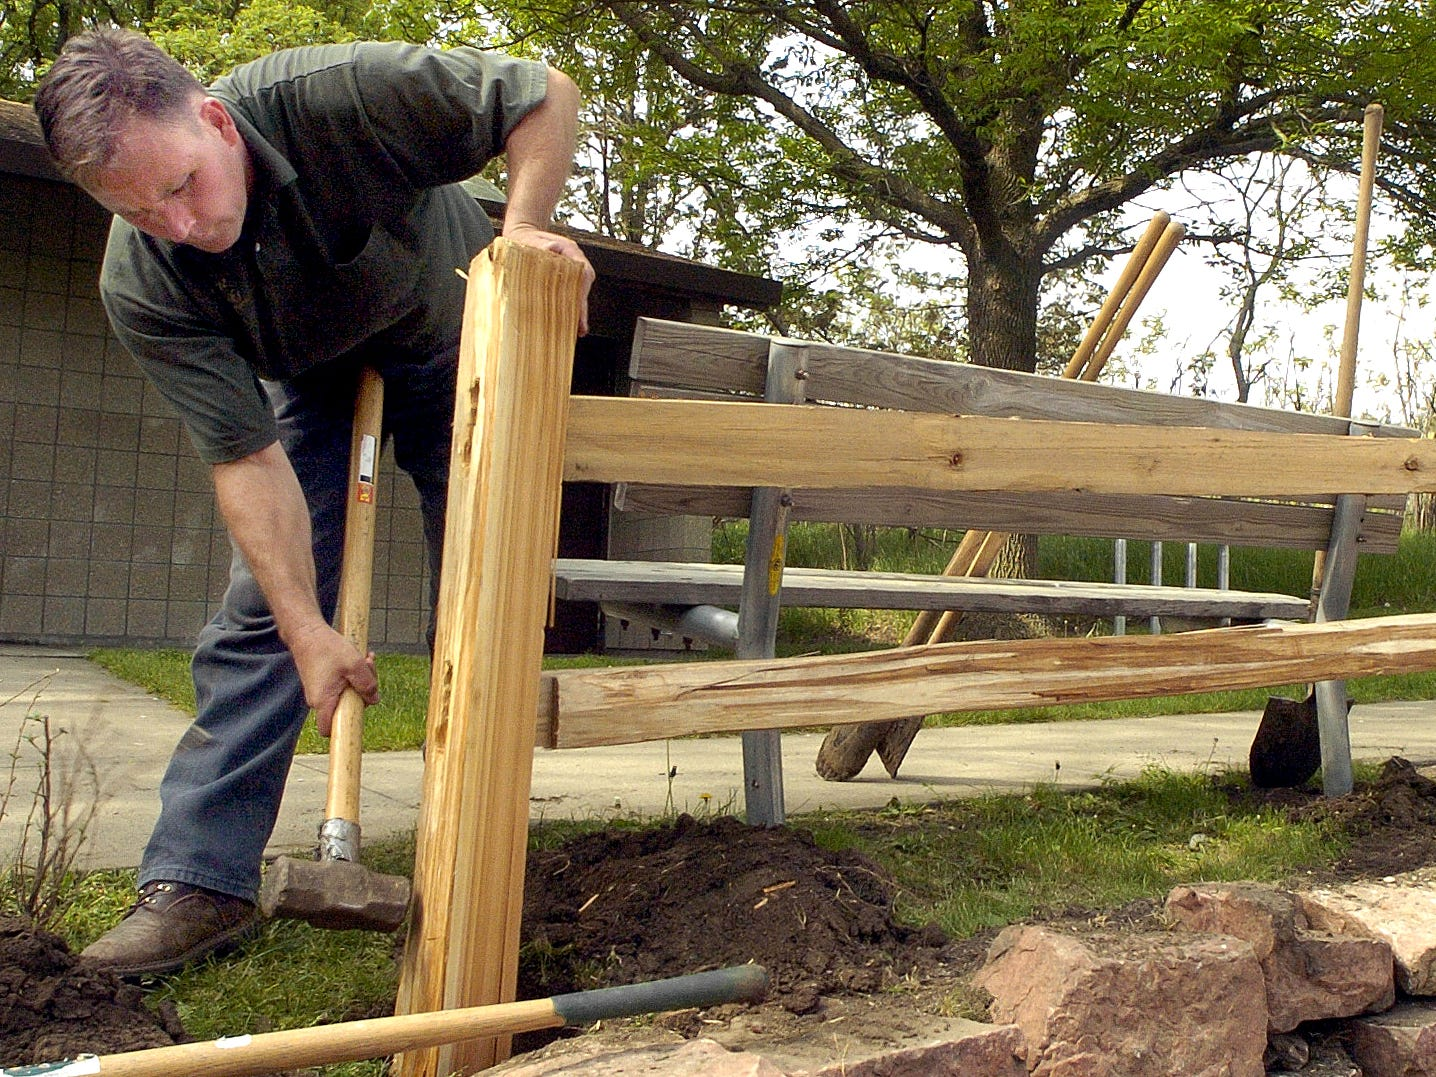 Mark Robinson, left, conservation technician and Eric Boyda, park maintenance, build a section of new fence near the bathrooms at Palisades State Park as the park prepares for Memorial Weekend visitors May 23, 2006.